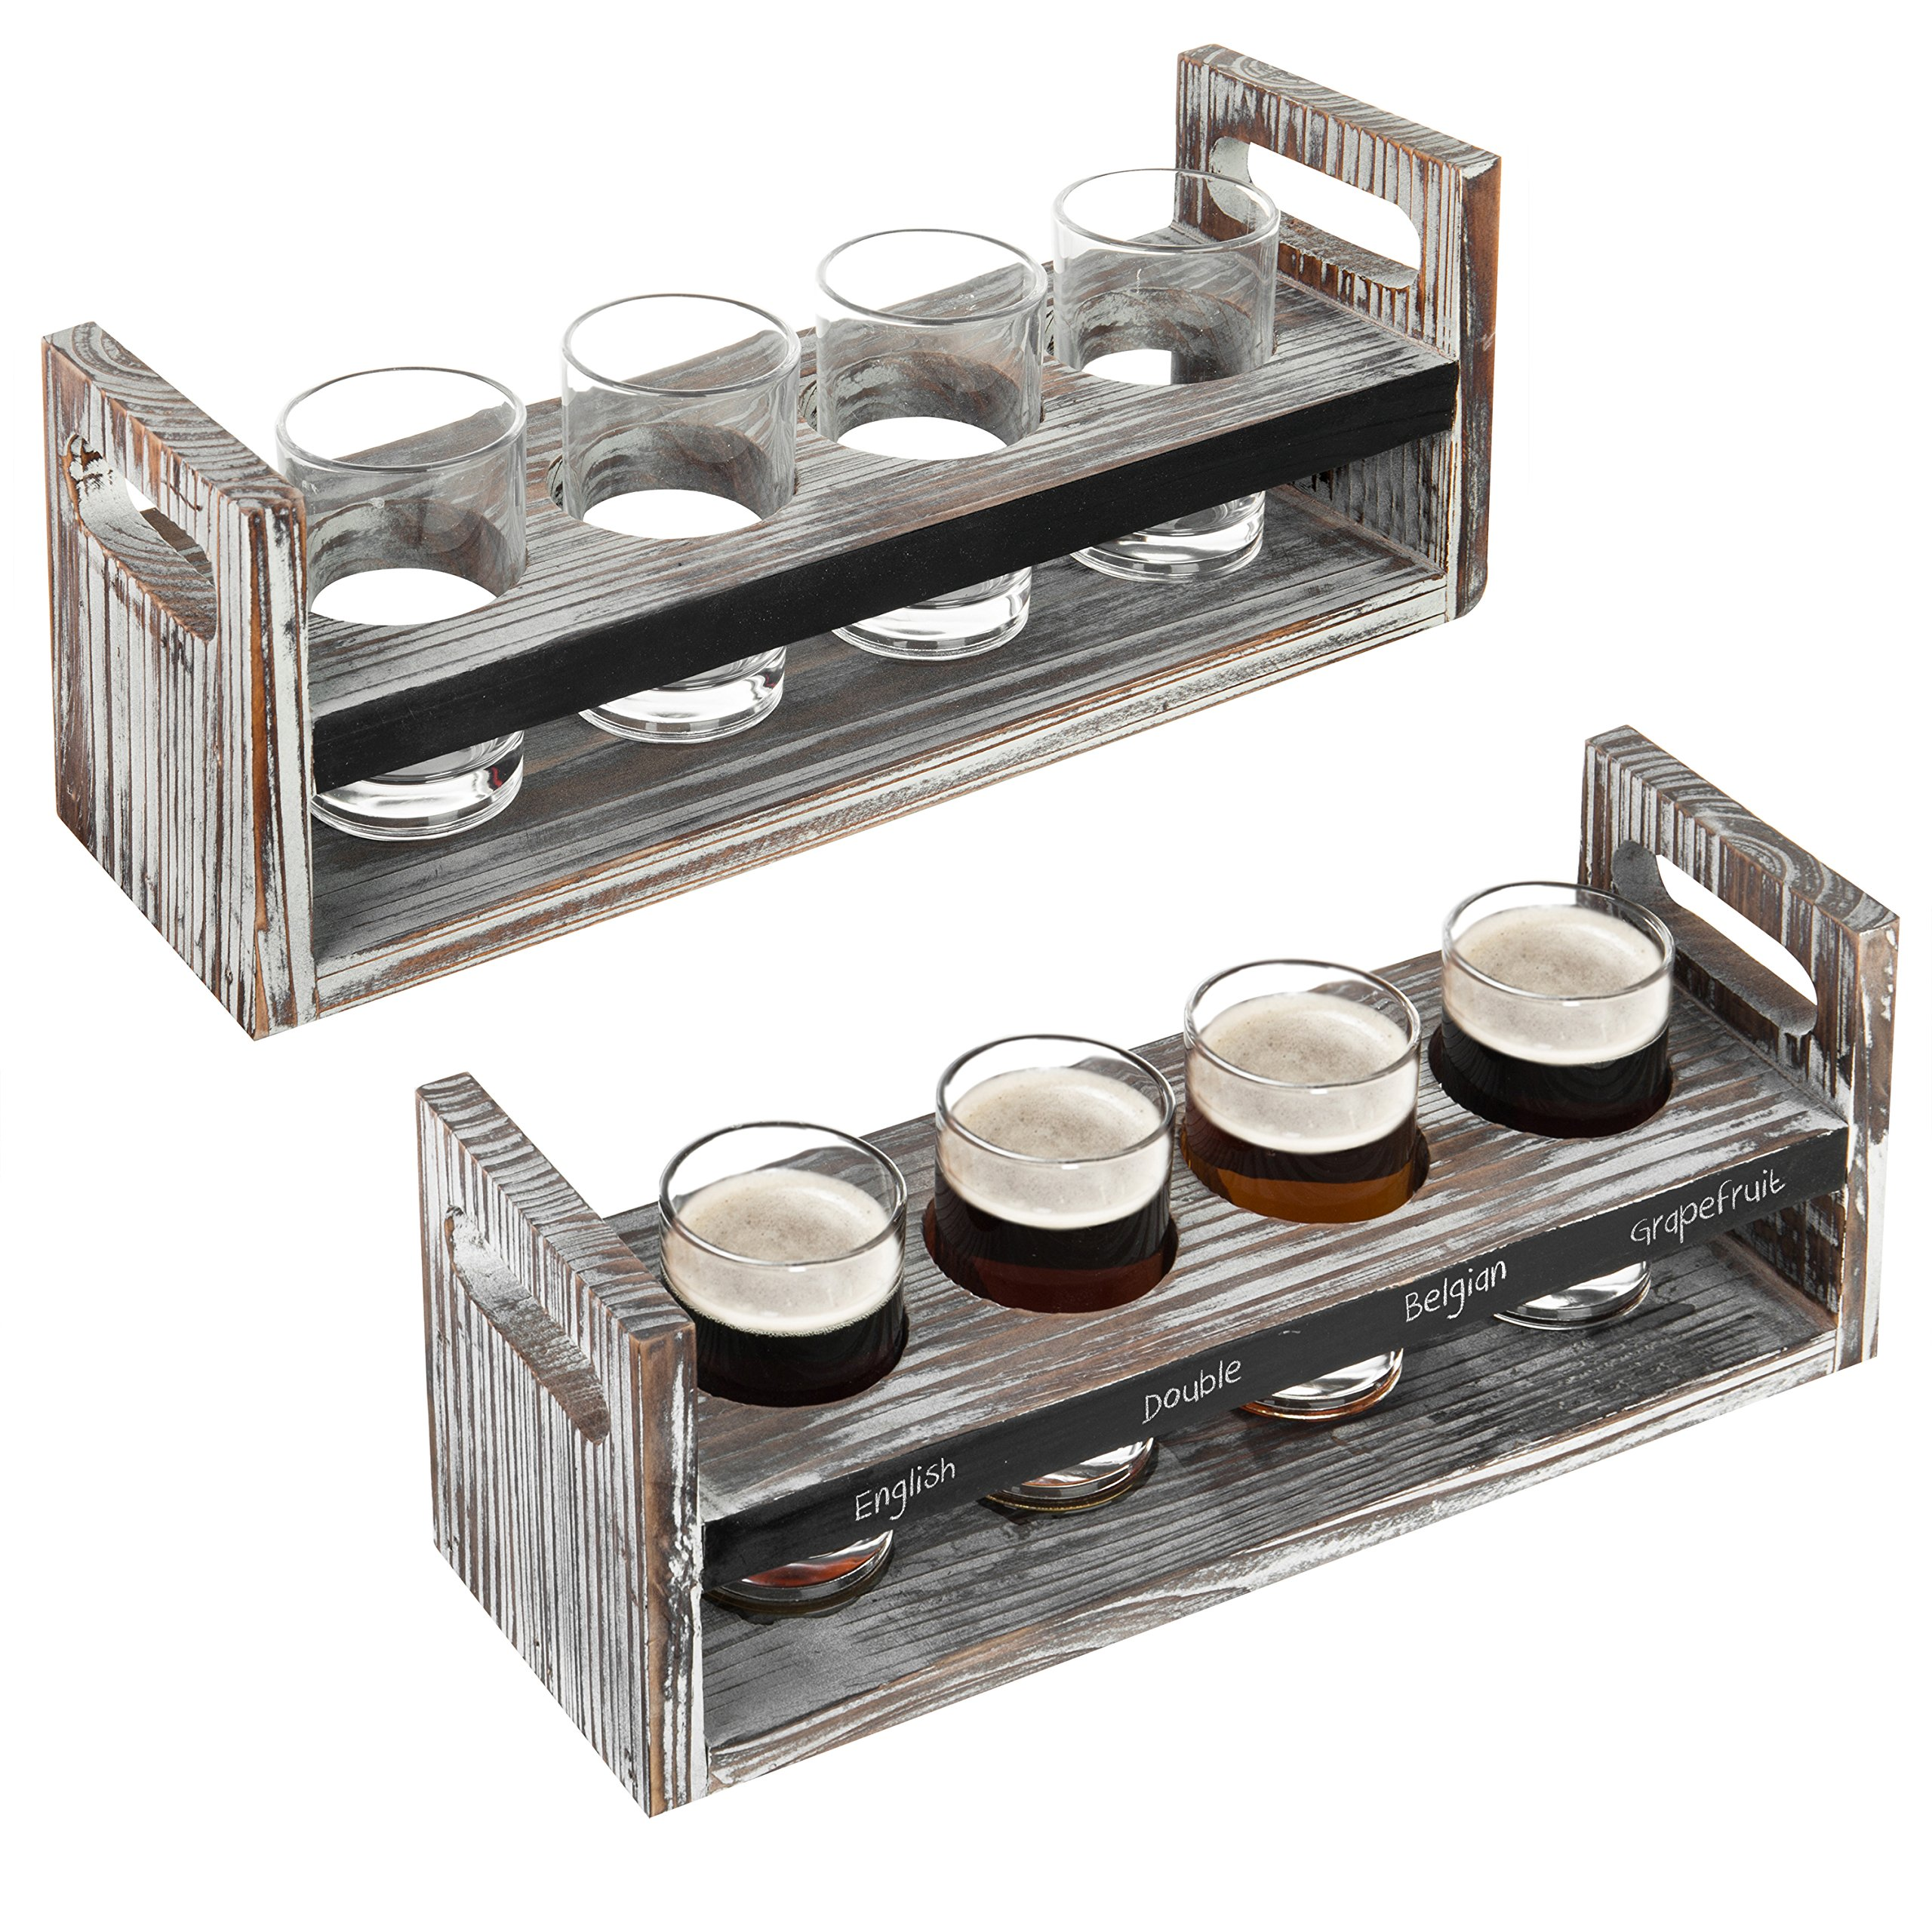 MyGift Set of 2 Torched Wood Beer Flight Serving Caddies with Chalkboard Panels & 4 Tasting Glasses by MyGift